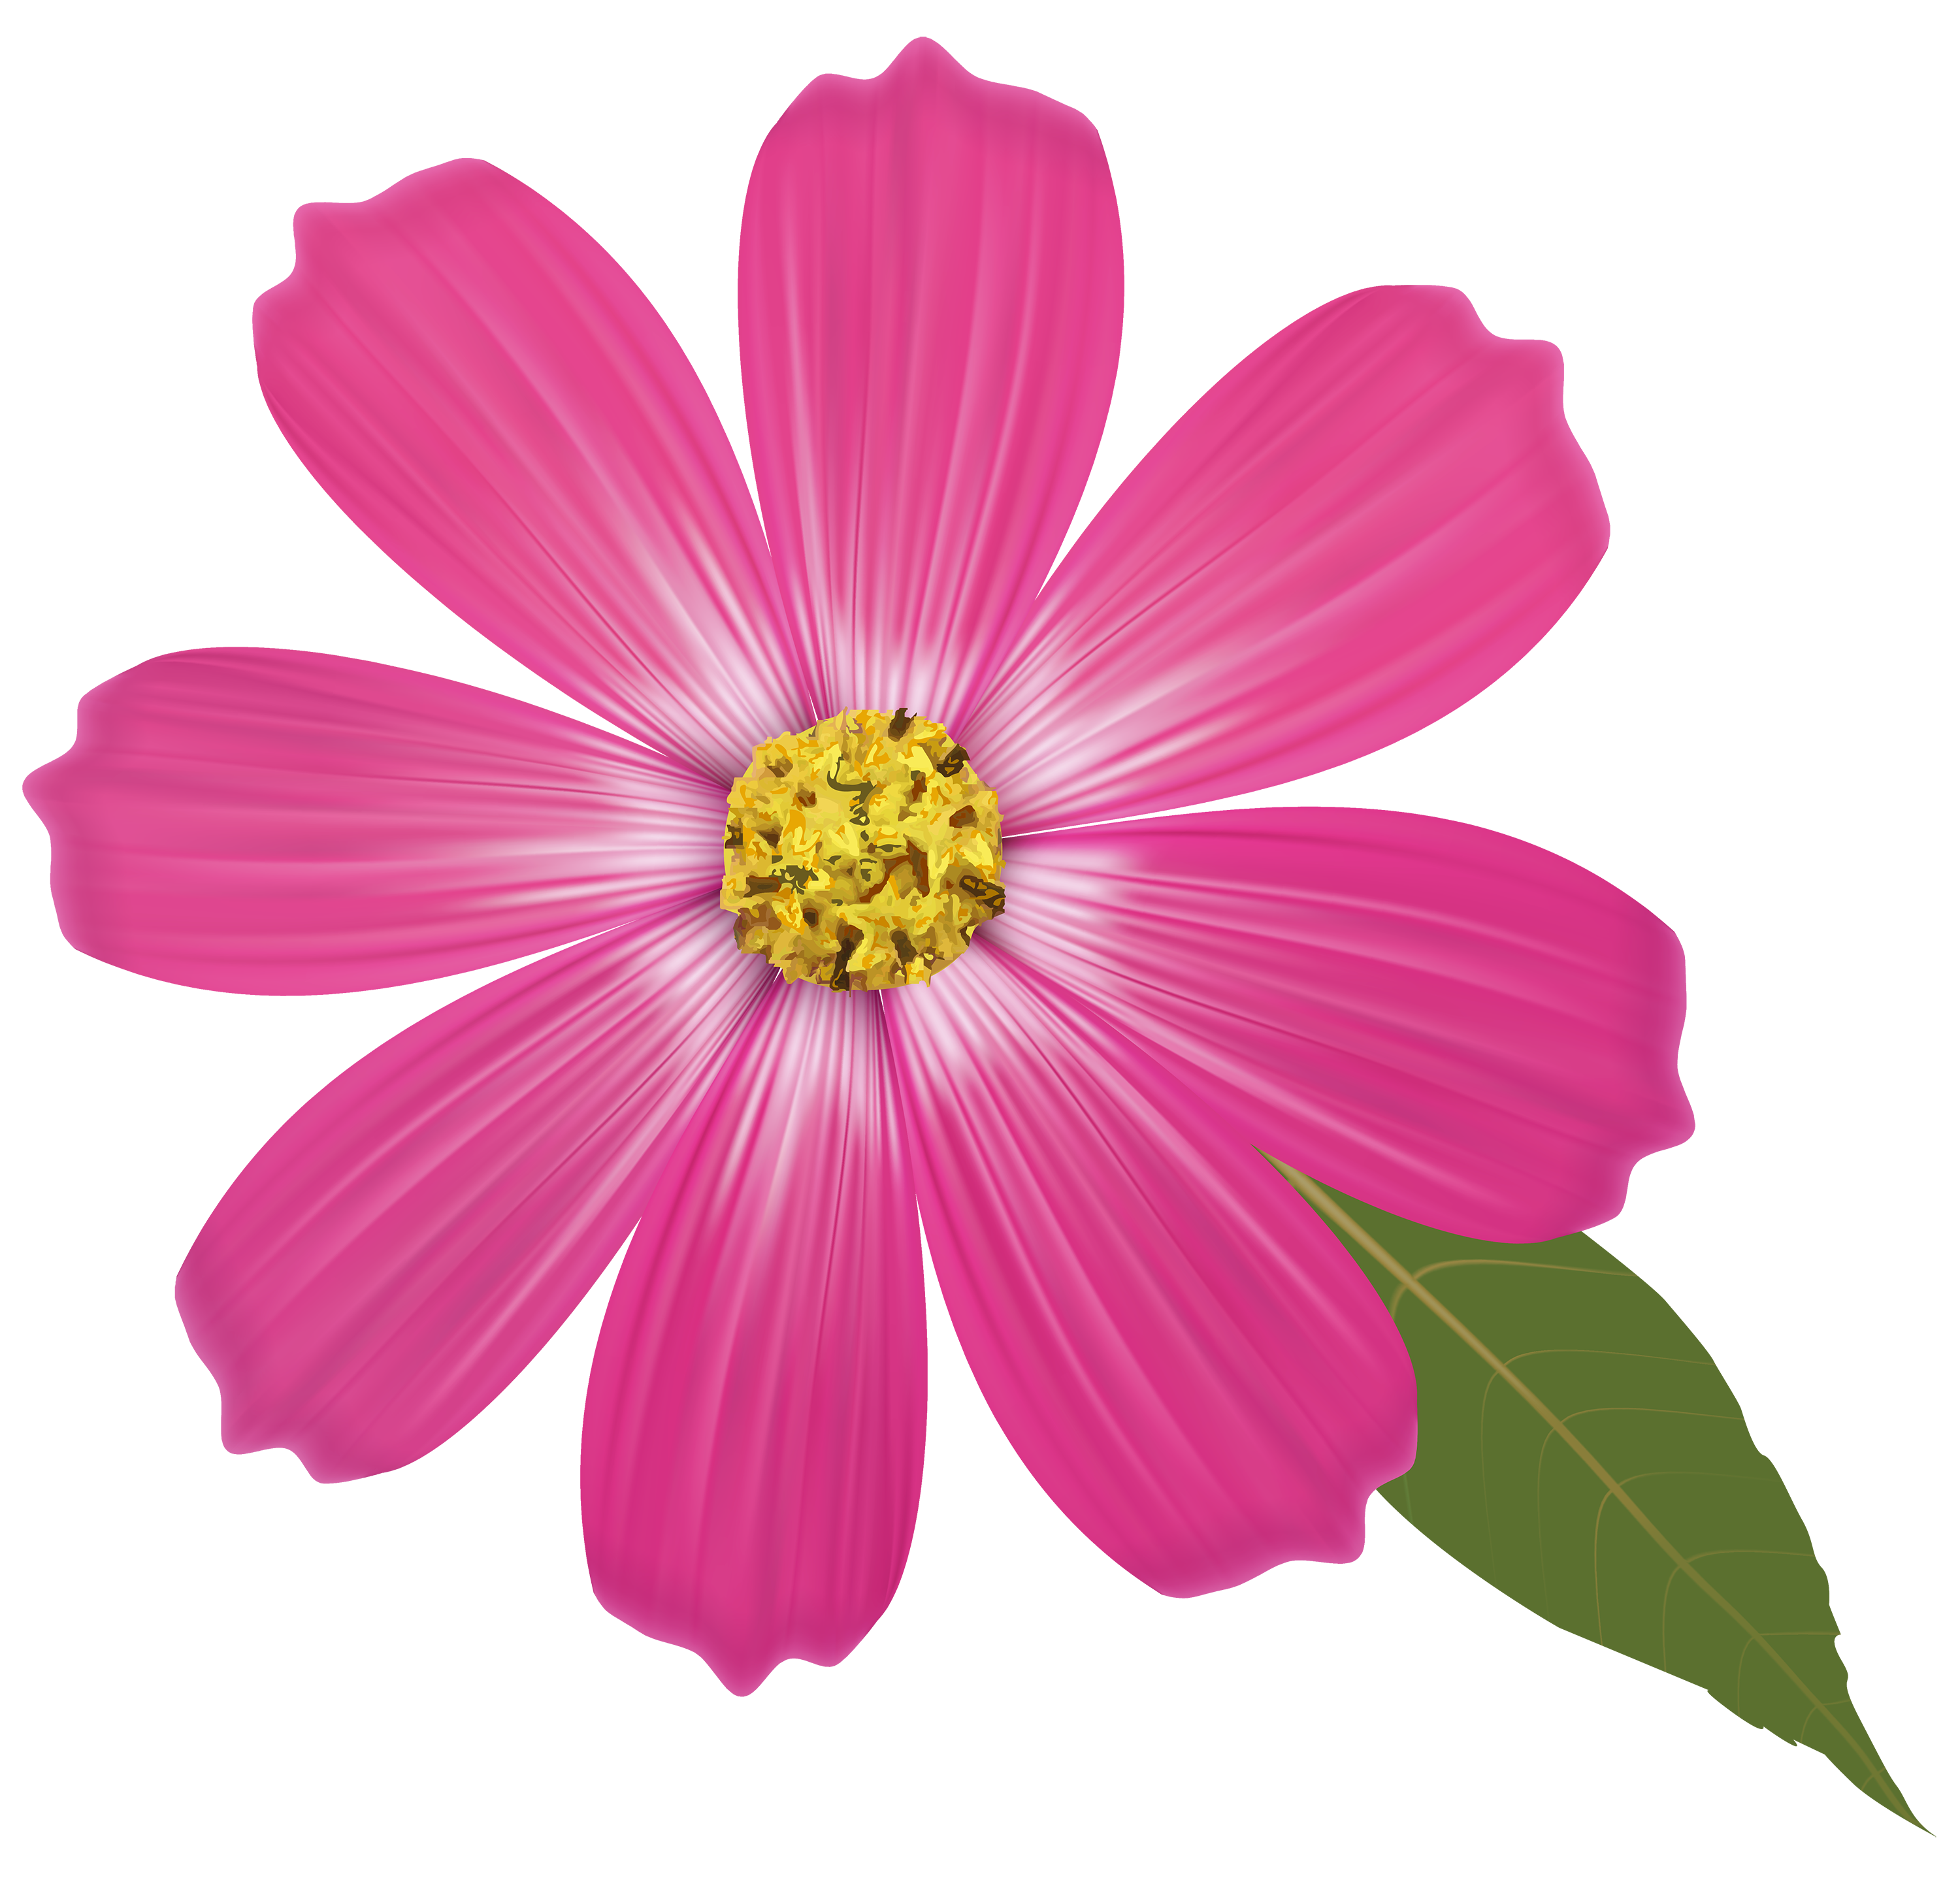 Pink Flower PNG Clipart Flower clipart images, Flower